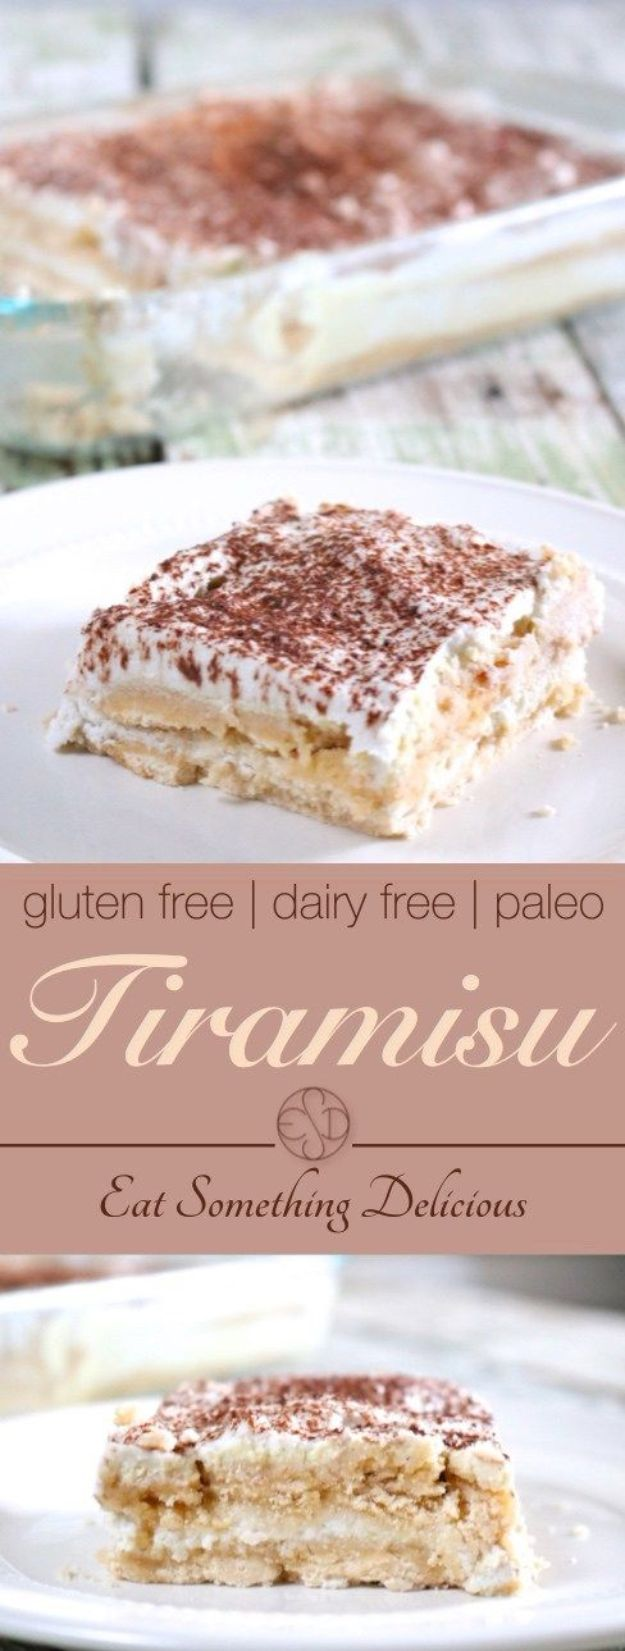 Gluten Free Desserts - Gluten Free Tiramisu - Easy Recipes and Healthy Recipe Ideas for Cookies, Cake, Pie, Cupcakes, Cheesecake and Ice Cream - Best No Sugar Glutenfree Chocolate, No Bake Dessert, Fruit, Peach, Apple and Banana Dishes - Flourless Christmas, Thanksgiving and Holiday Dishes #glutenfree #desserts #recipes